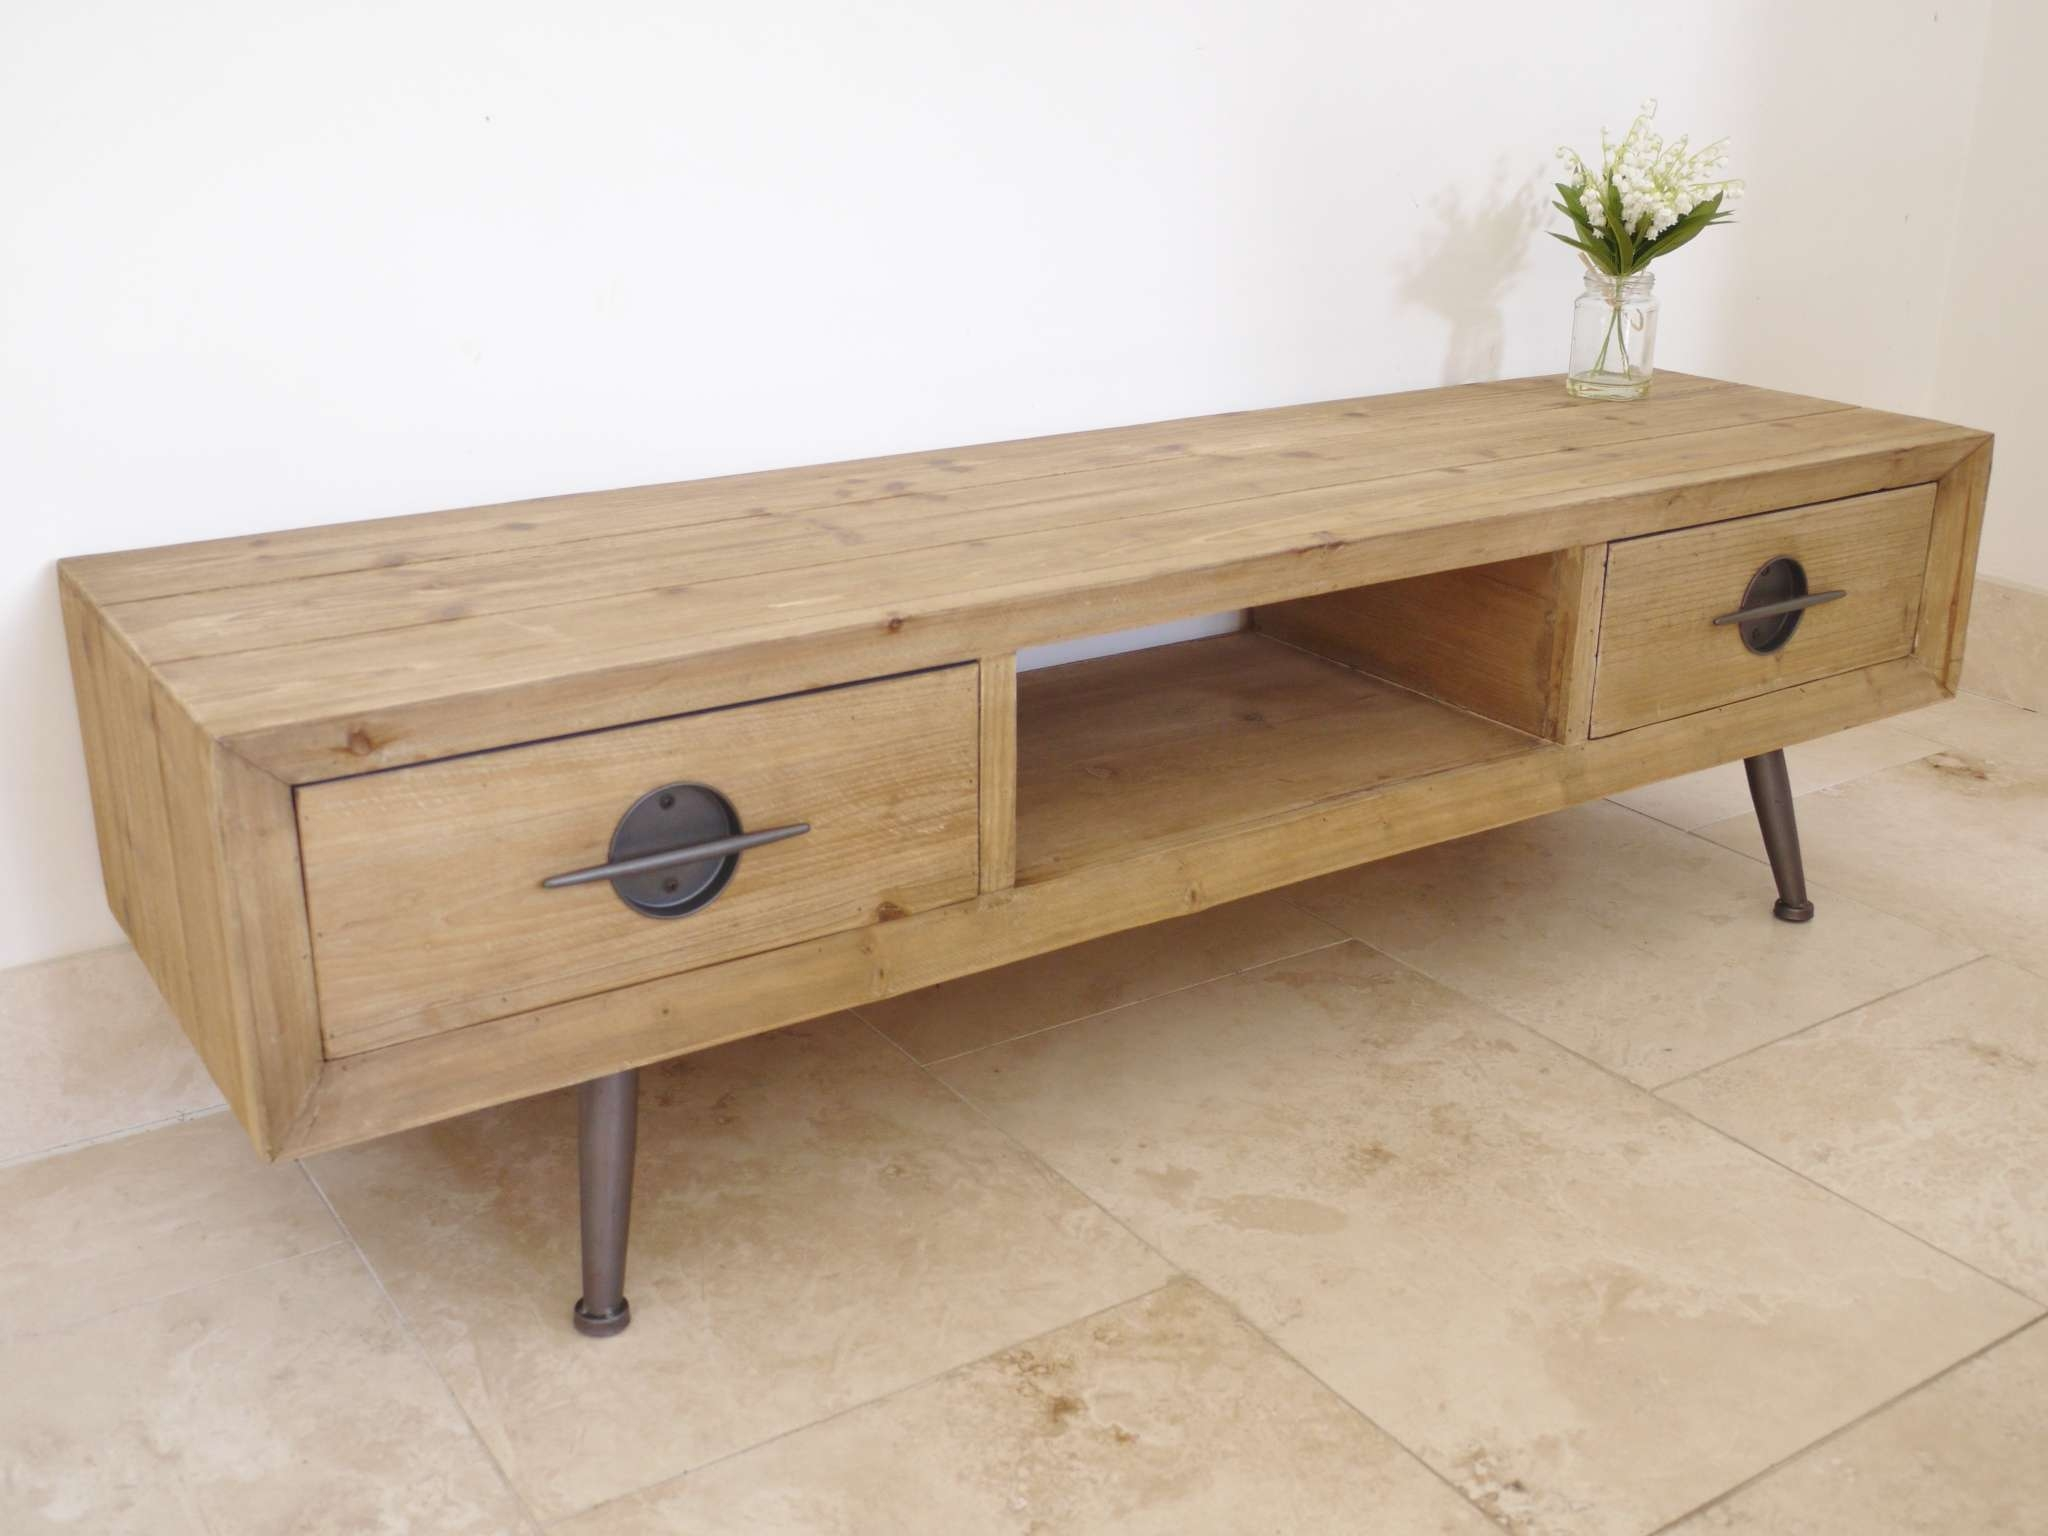 Tv Units | Tv Stands | Tv Cabinets For Sale Uk – Elm Home And Garden Throughout Wooden Tv Cabinets (View 10 of 20)